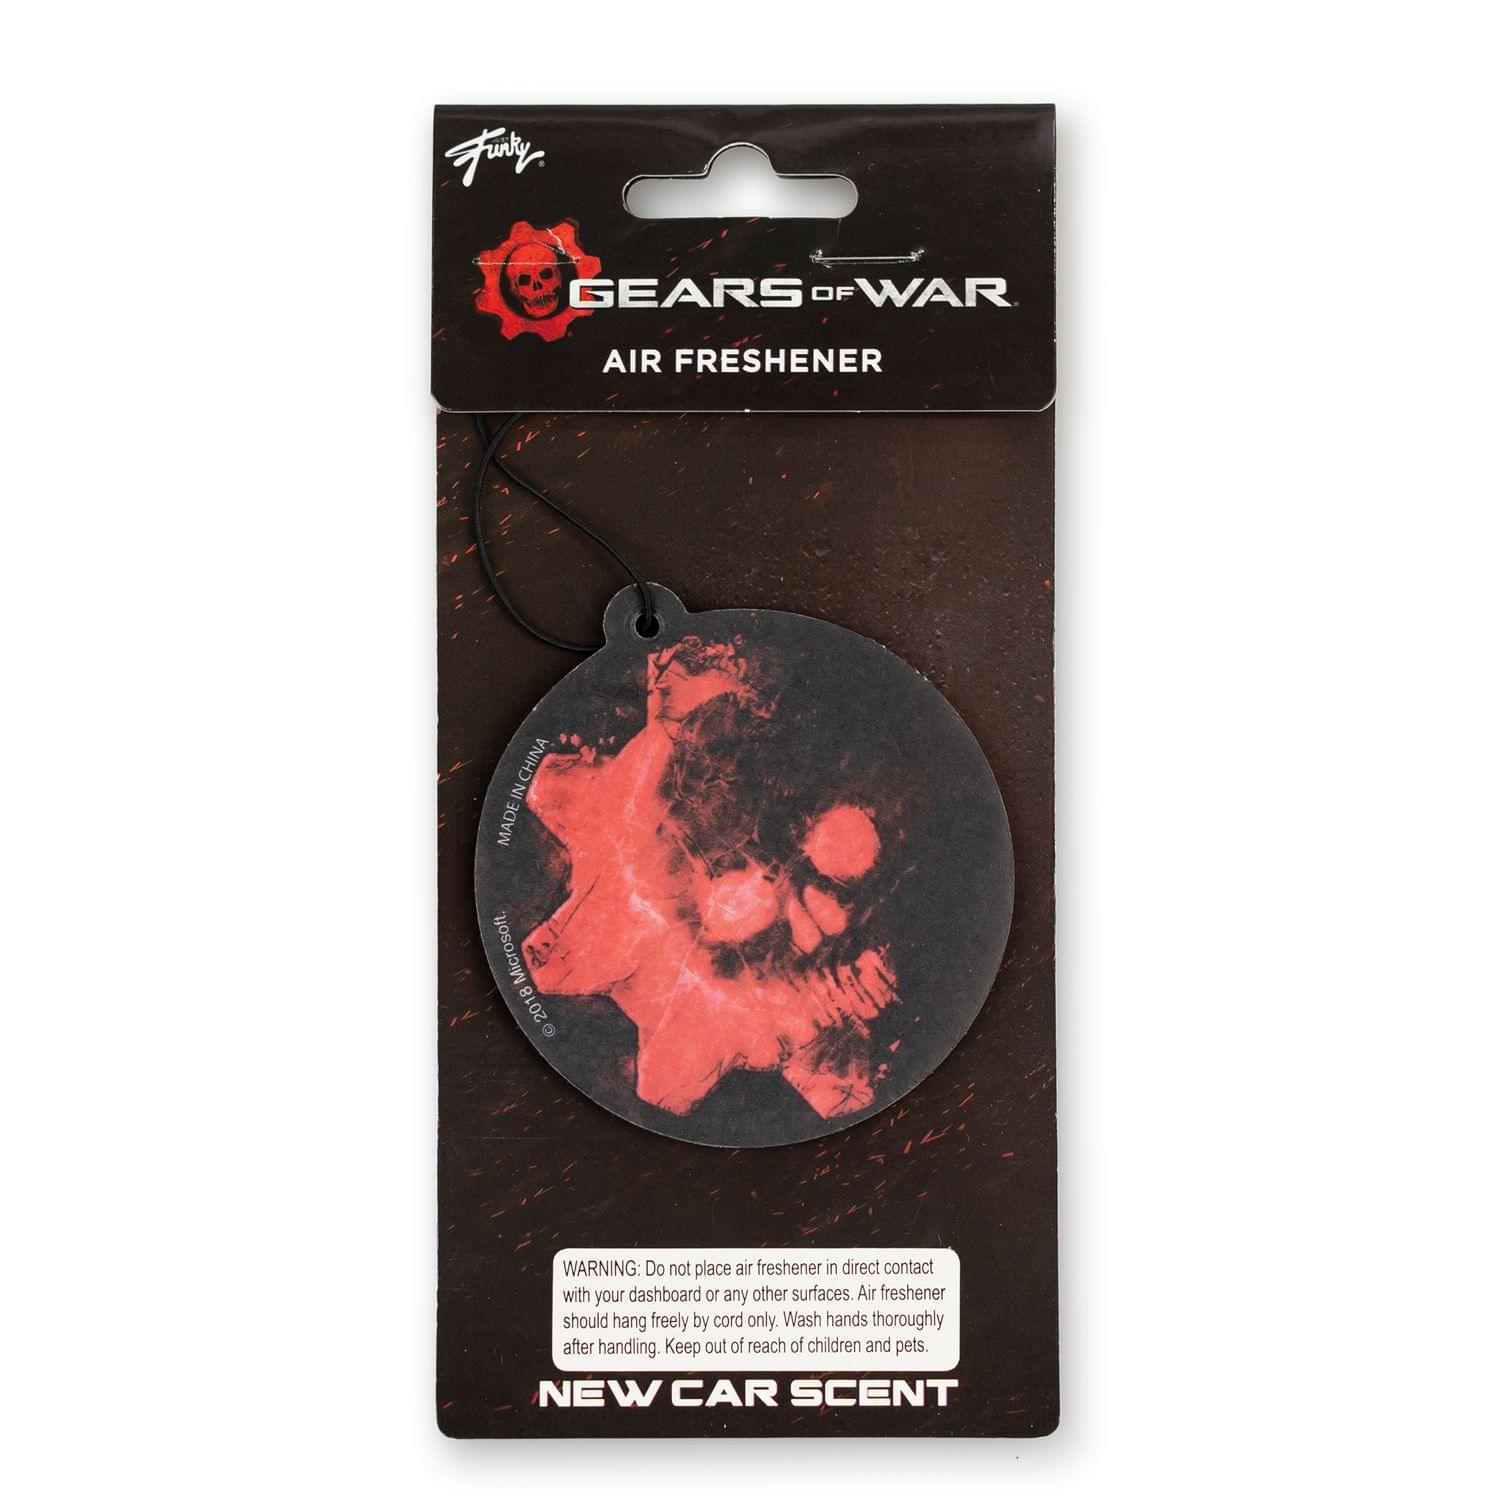 Xbox Gears Of War Air Freshener | Toynk Toys Exclusive - New Car Scent